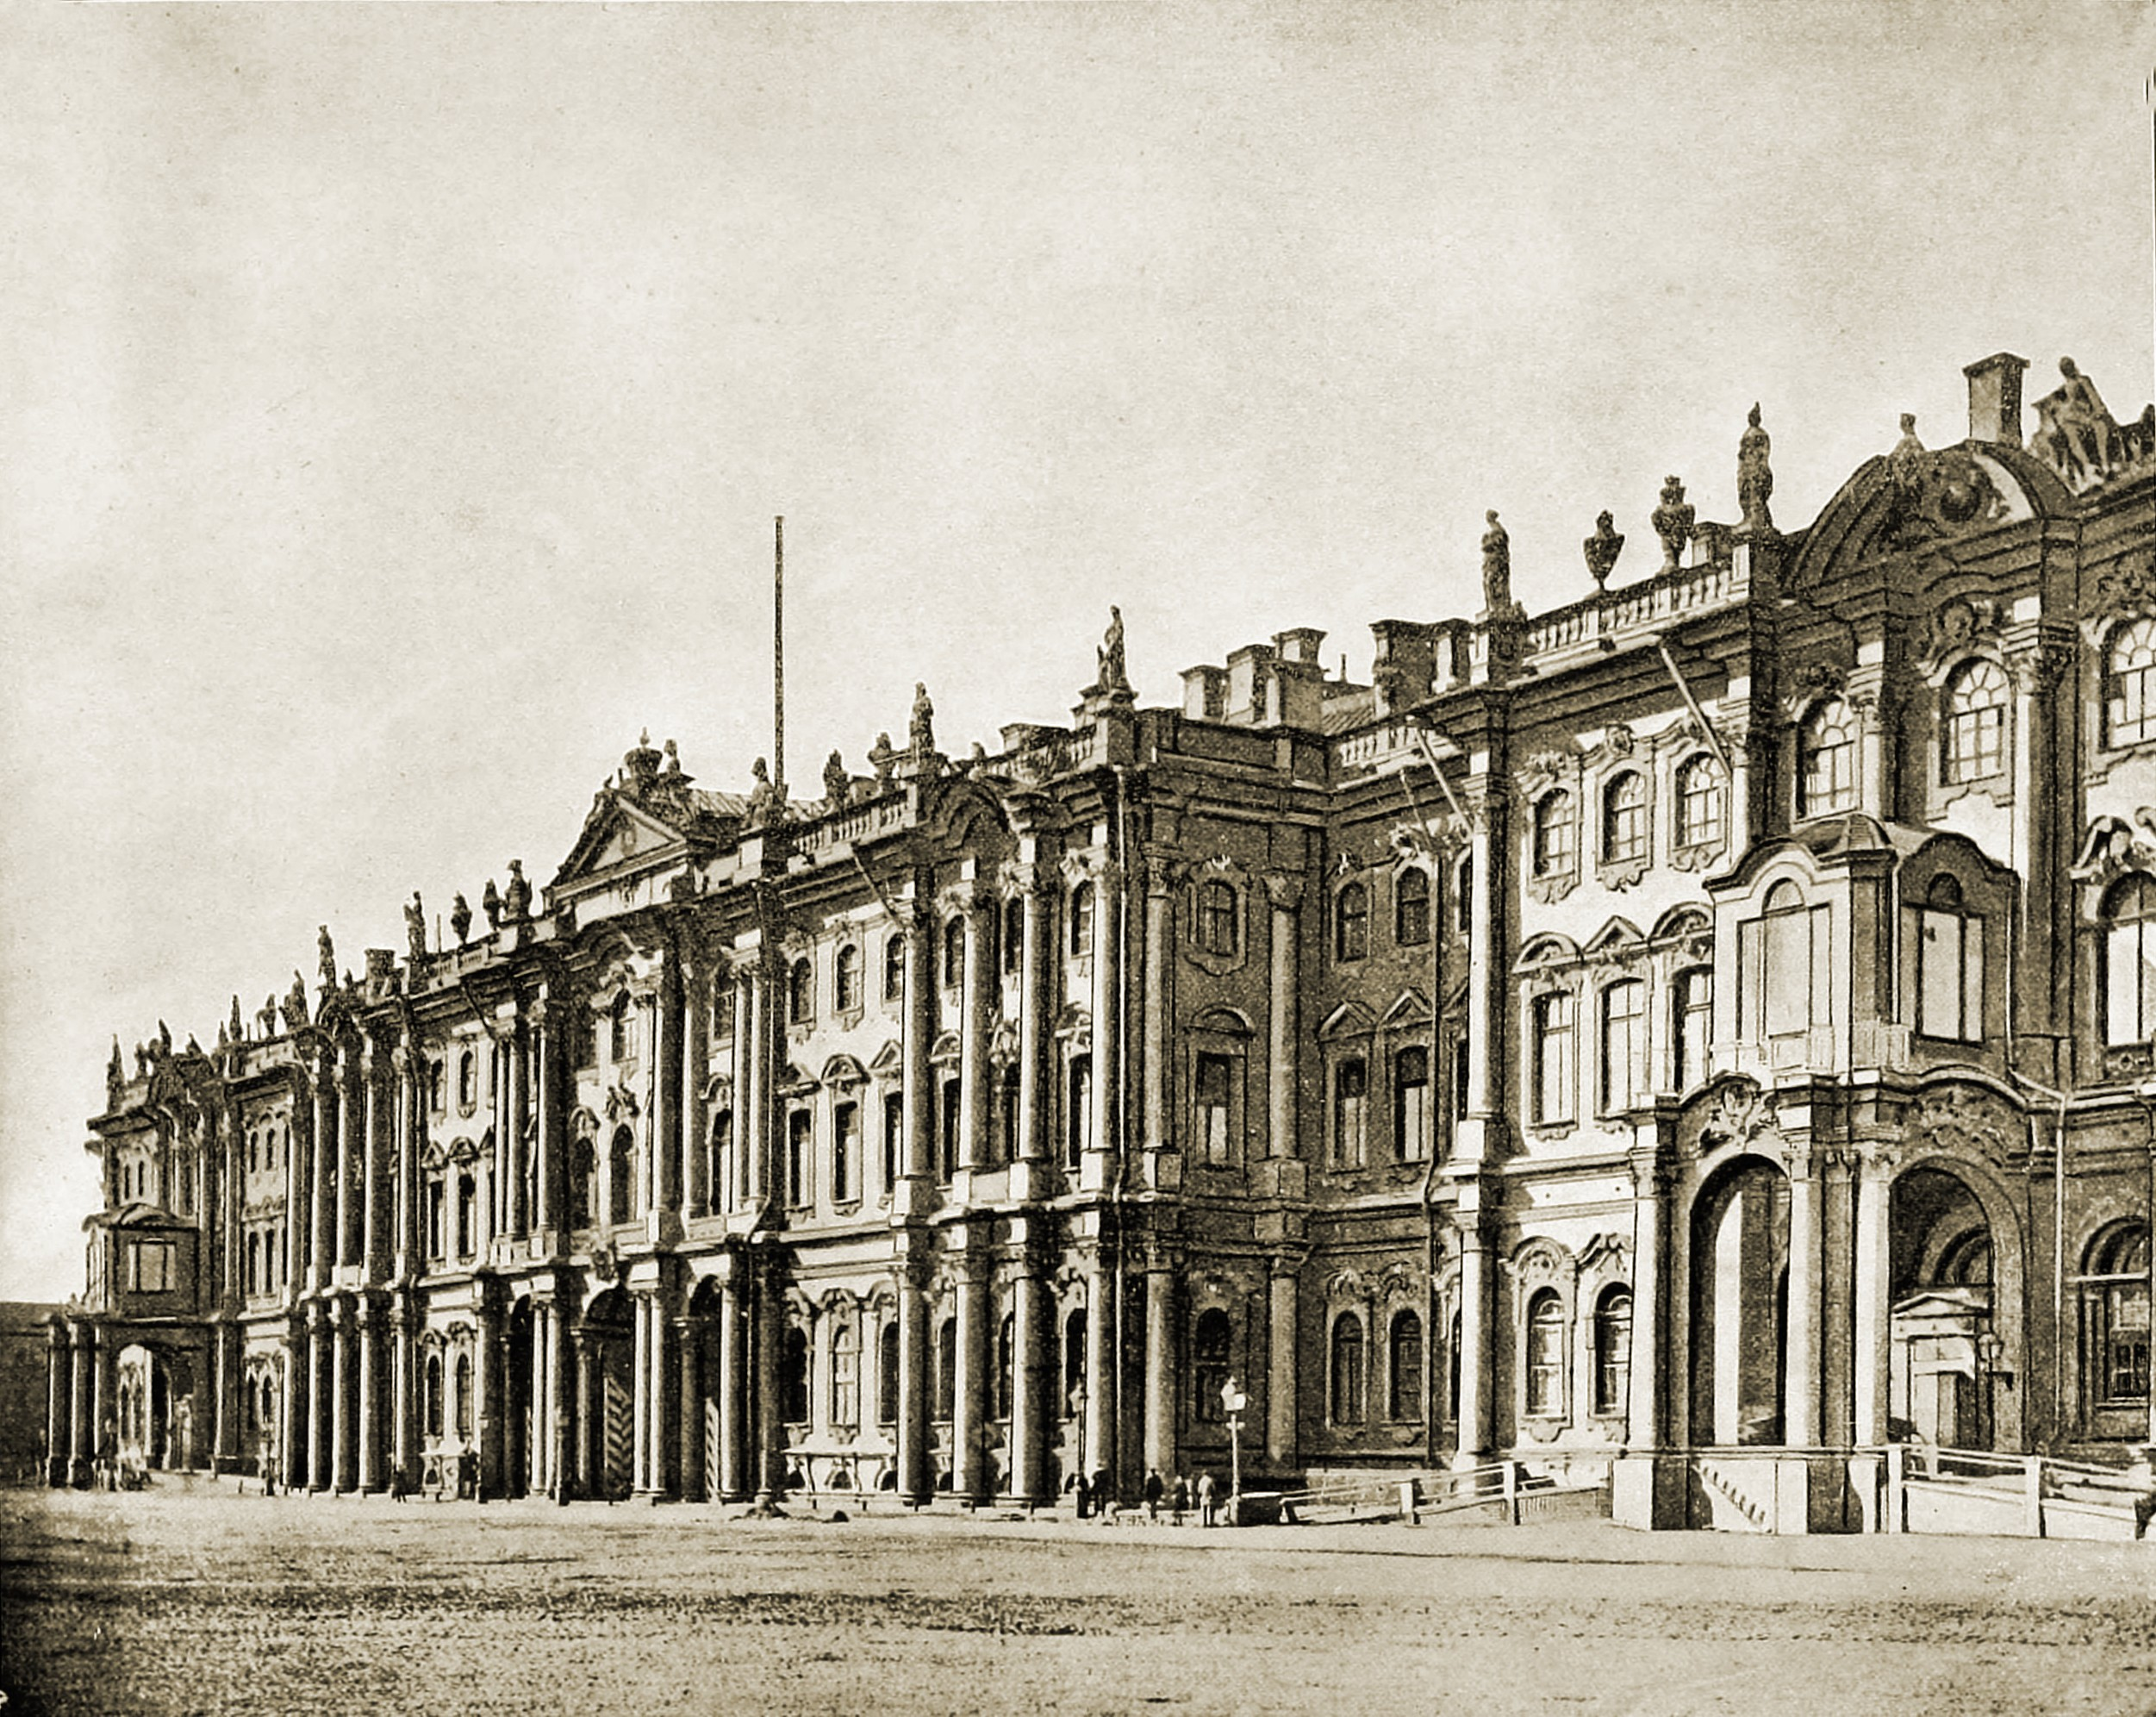 Winter Palace Saint Petersburg Russia about 1892